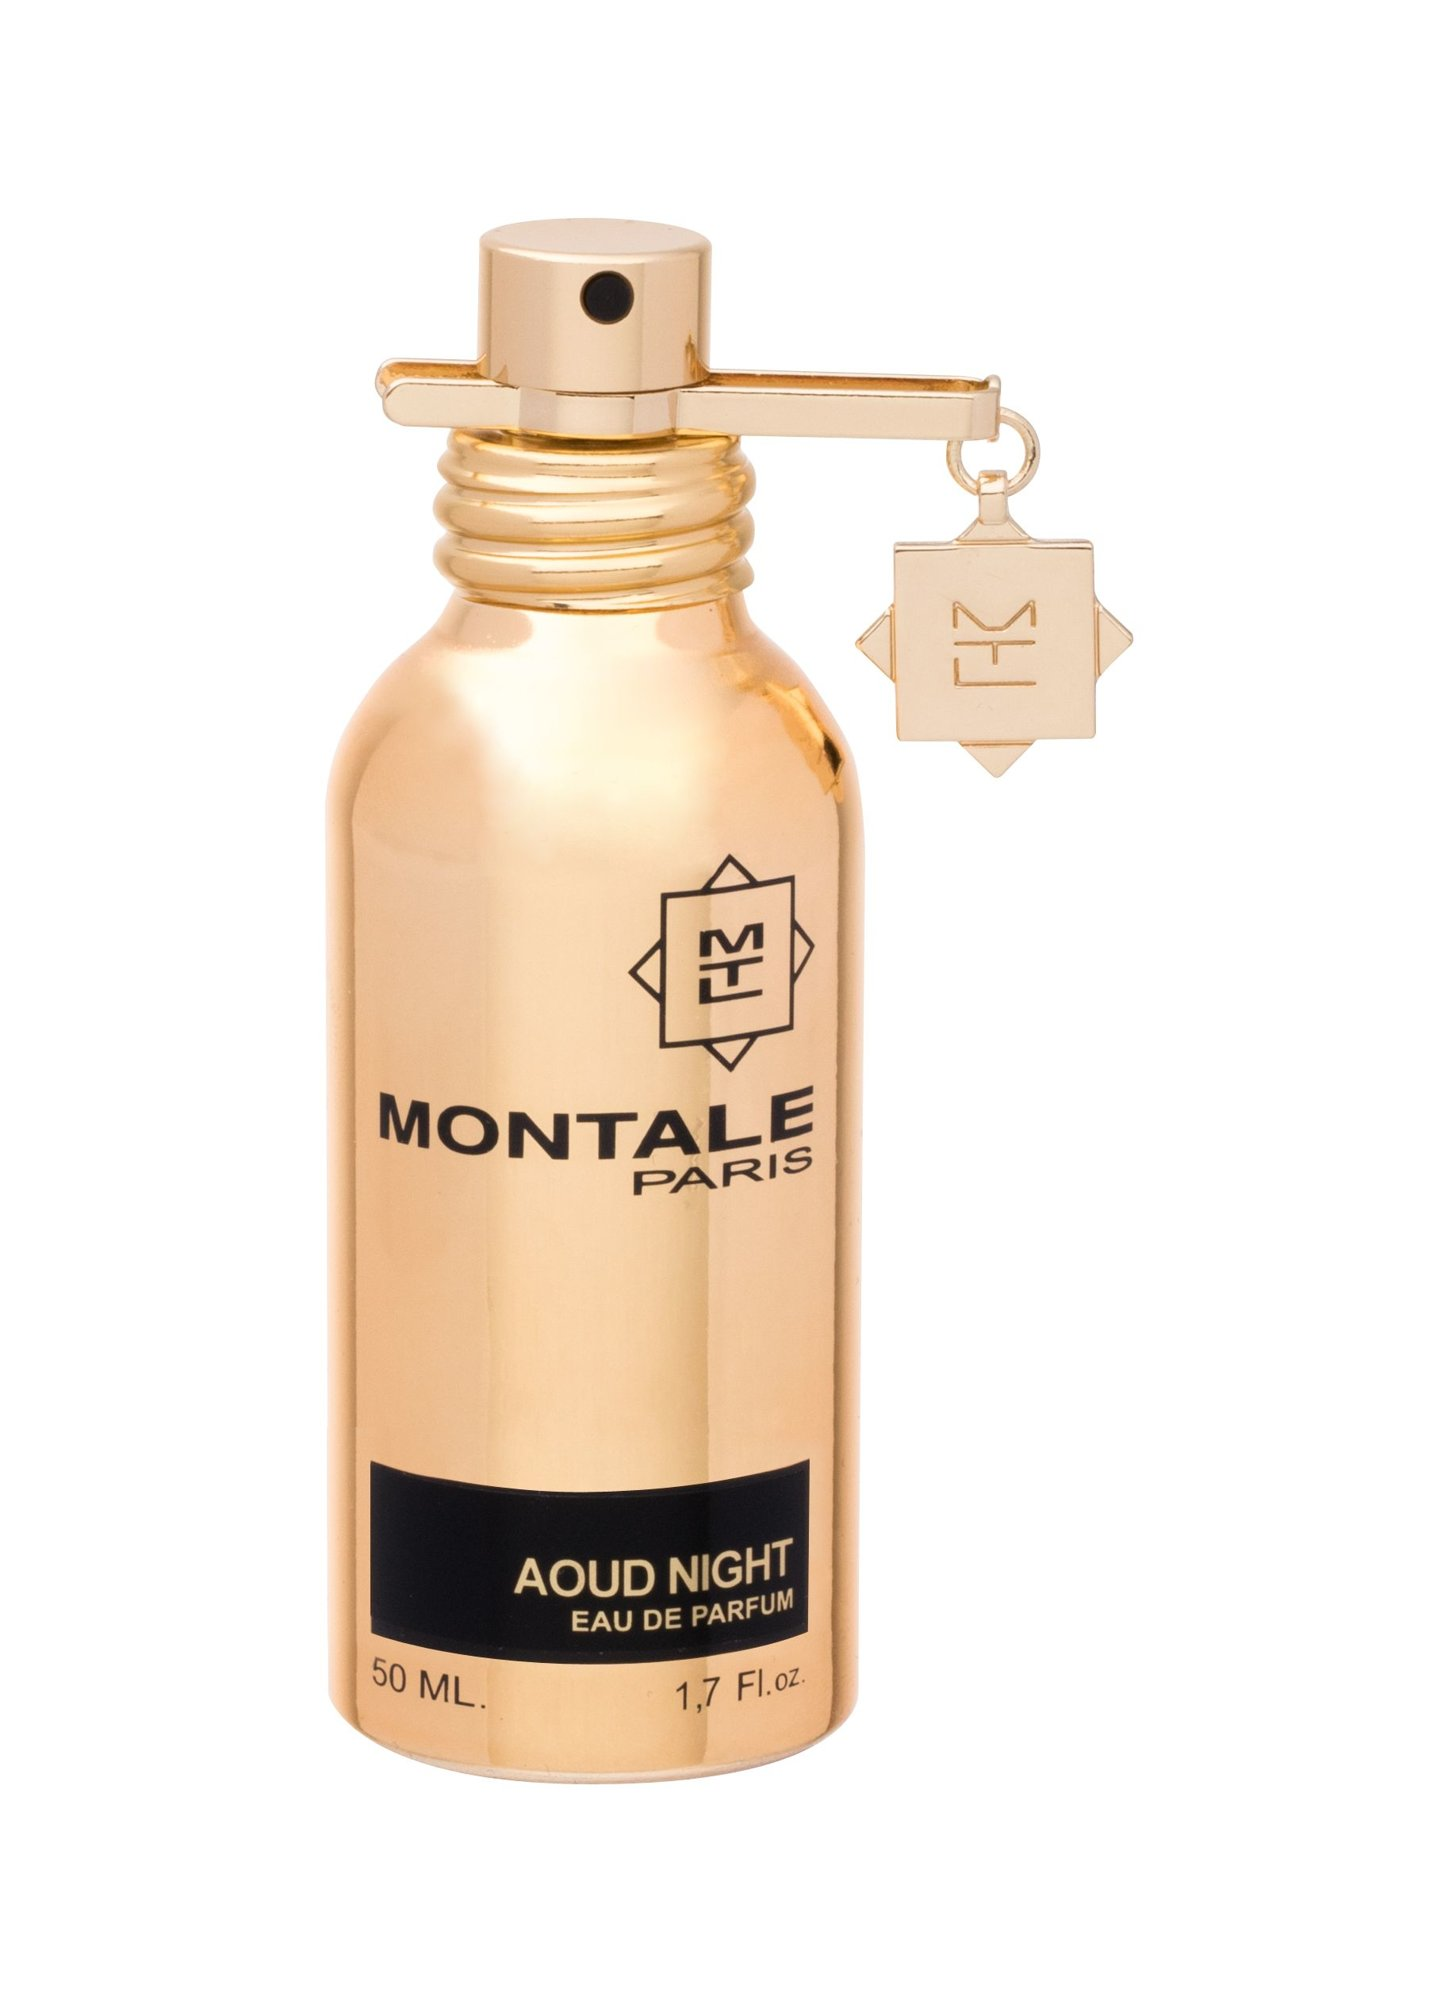 Montale Paris Aoud Night EDP 50ml